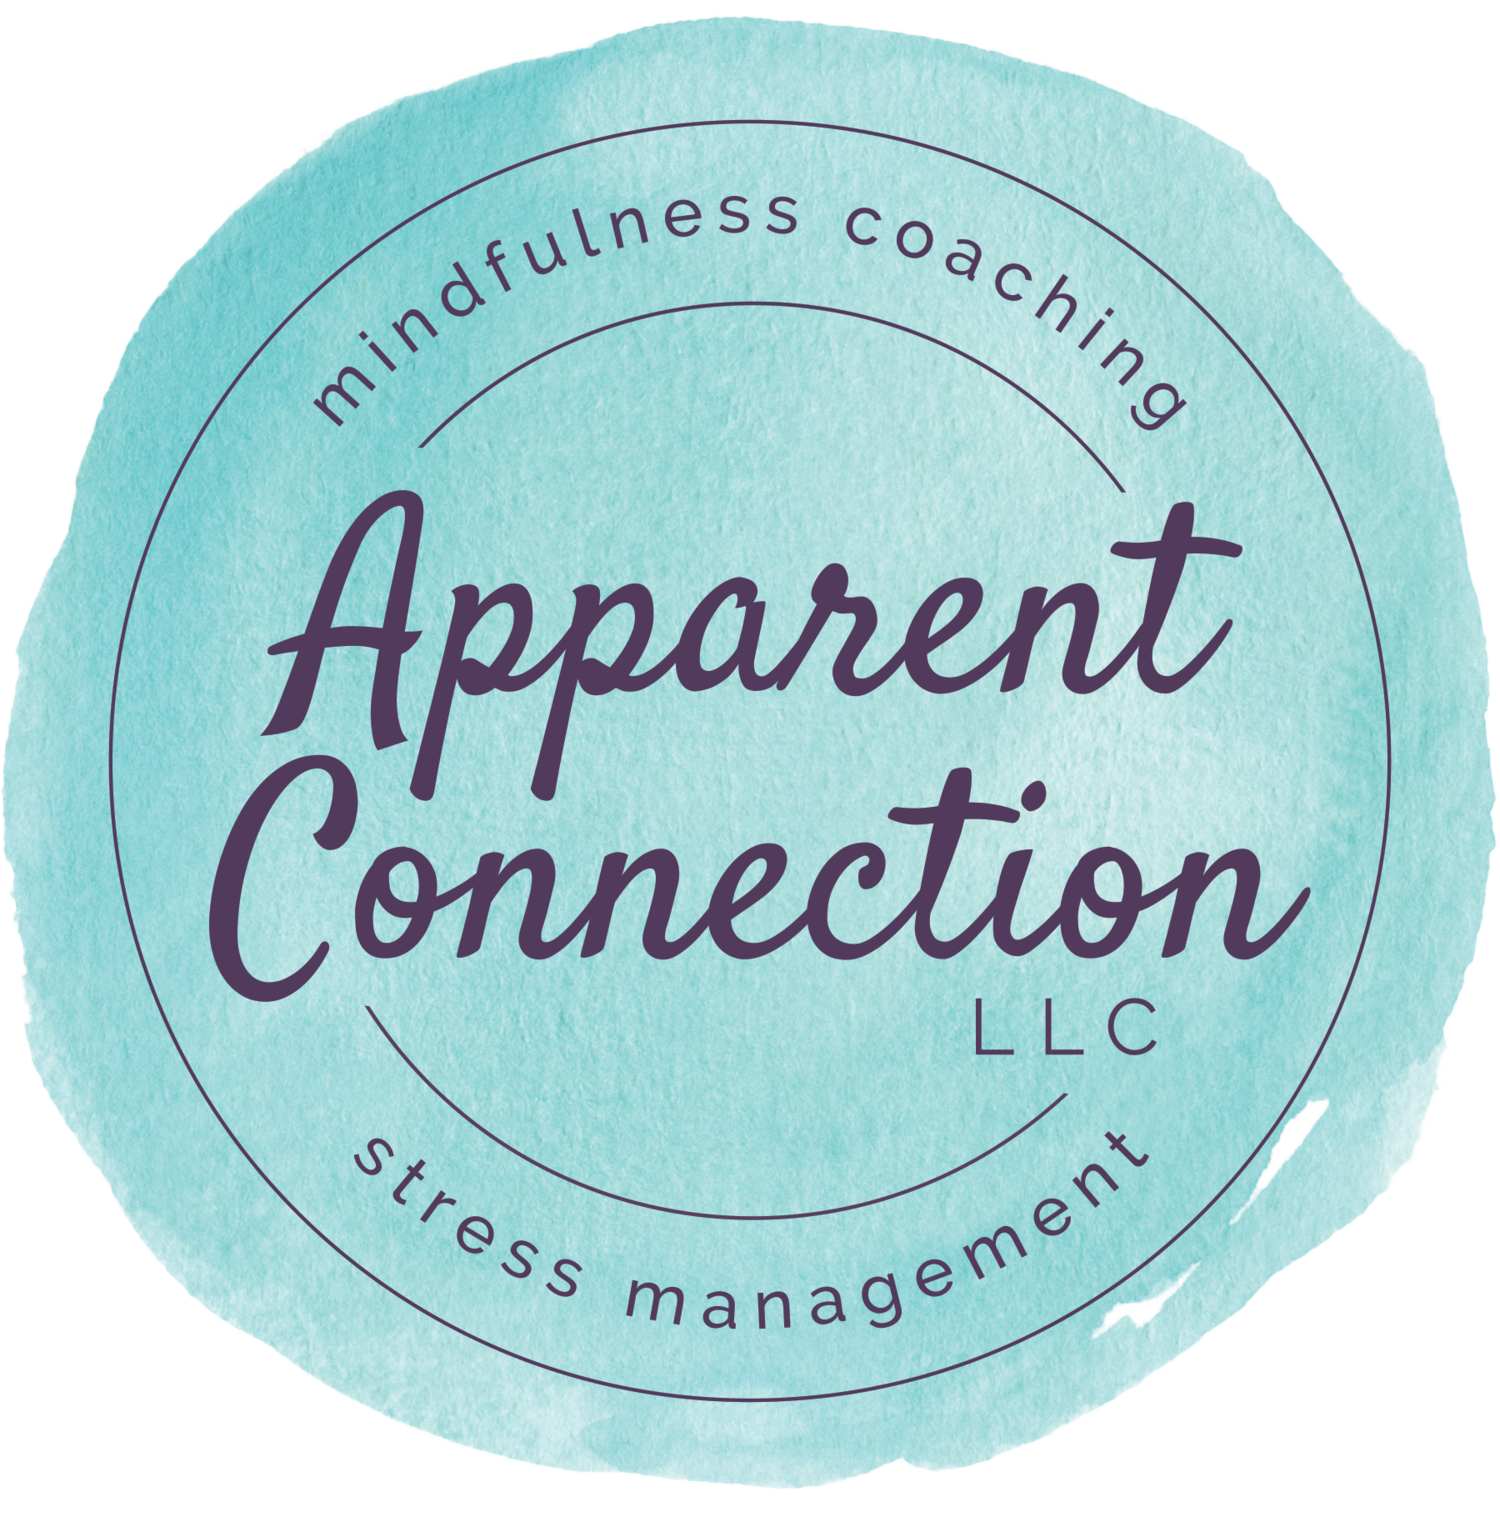 Apparent Connection LLC